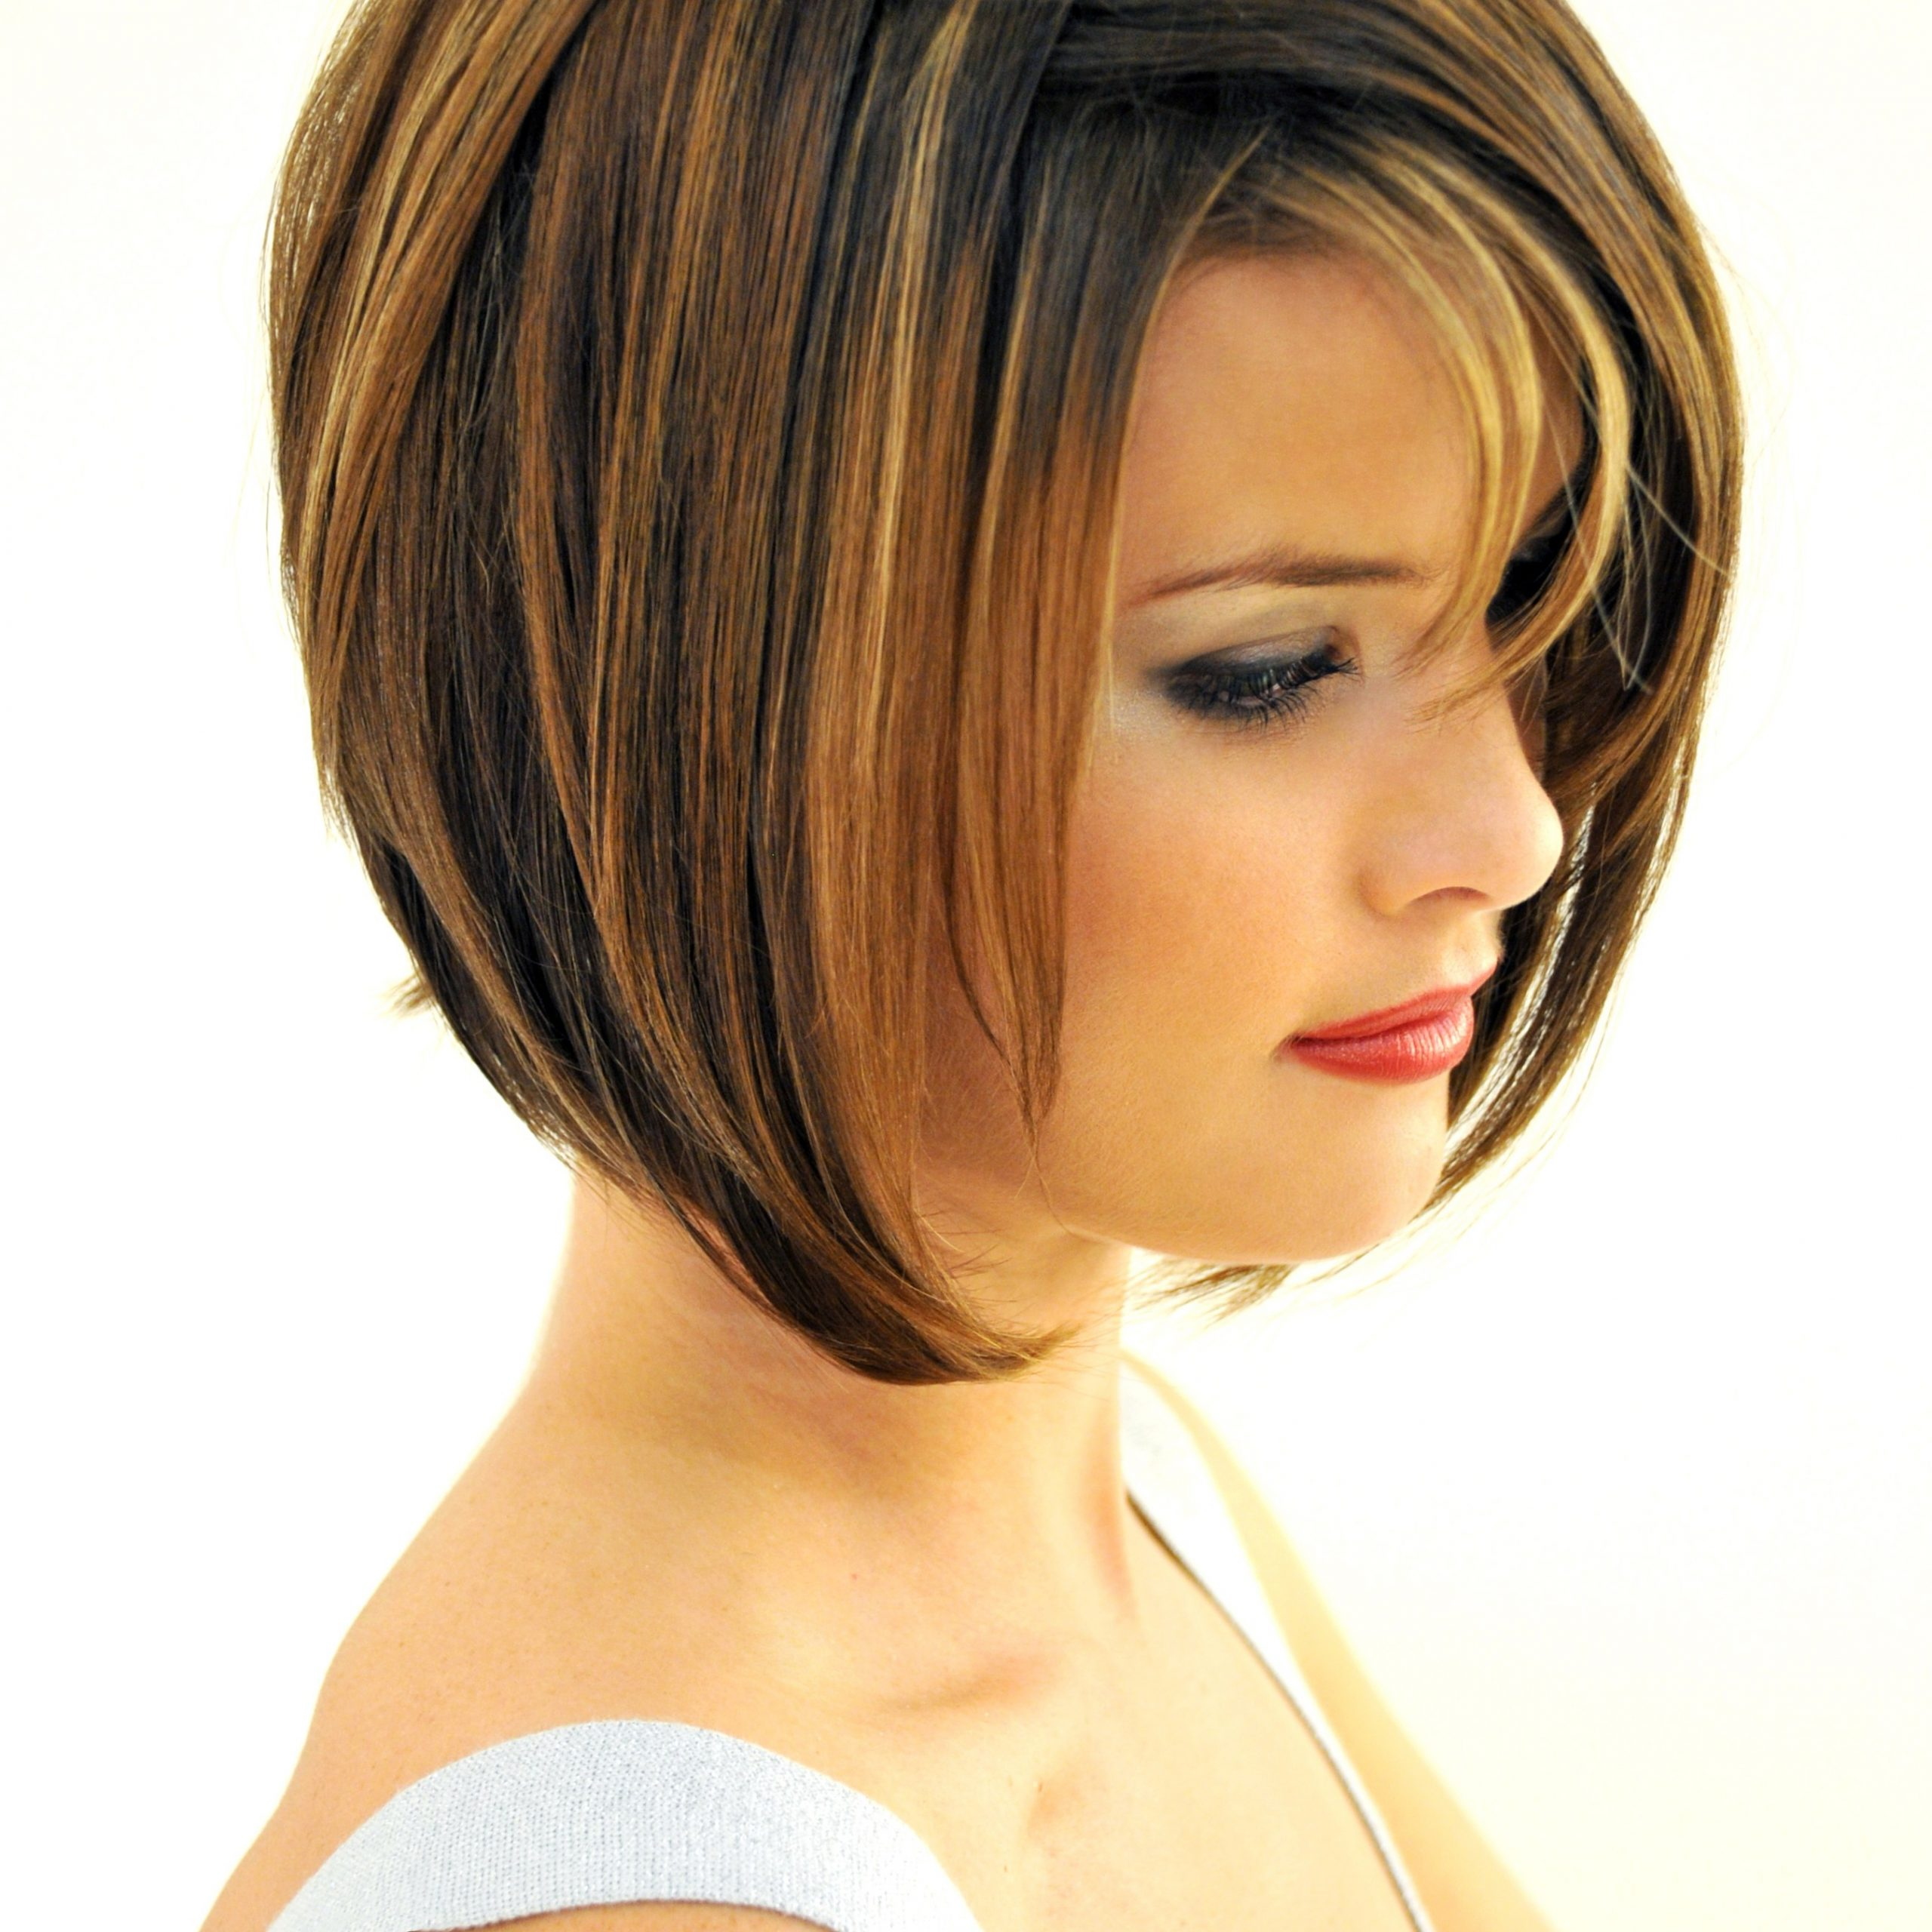 Fashionable A Very Short Layered Bob Hairstyles Throughout Short Bob Hairstyles With Bangs: 4 Perfect Ideas For You (View 10 of 20)